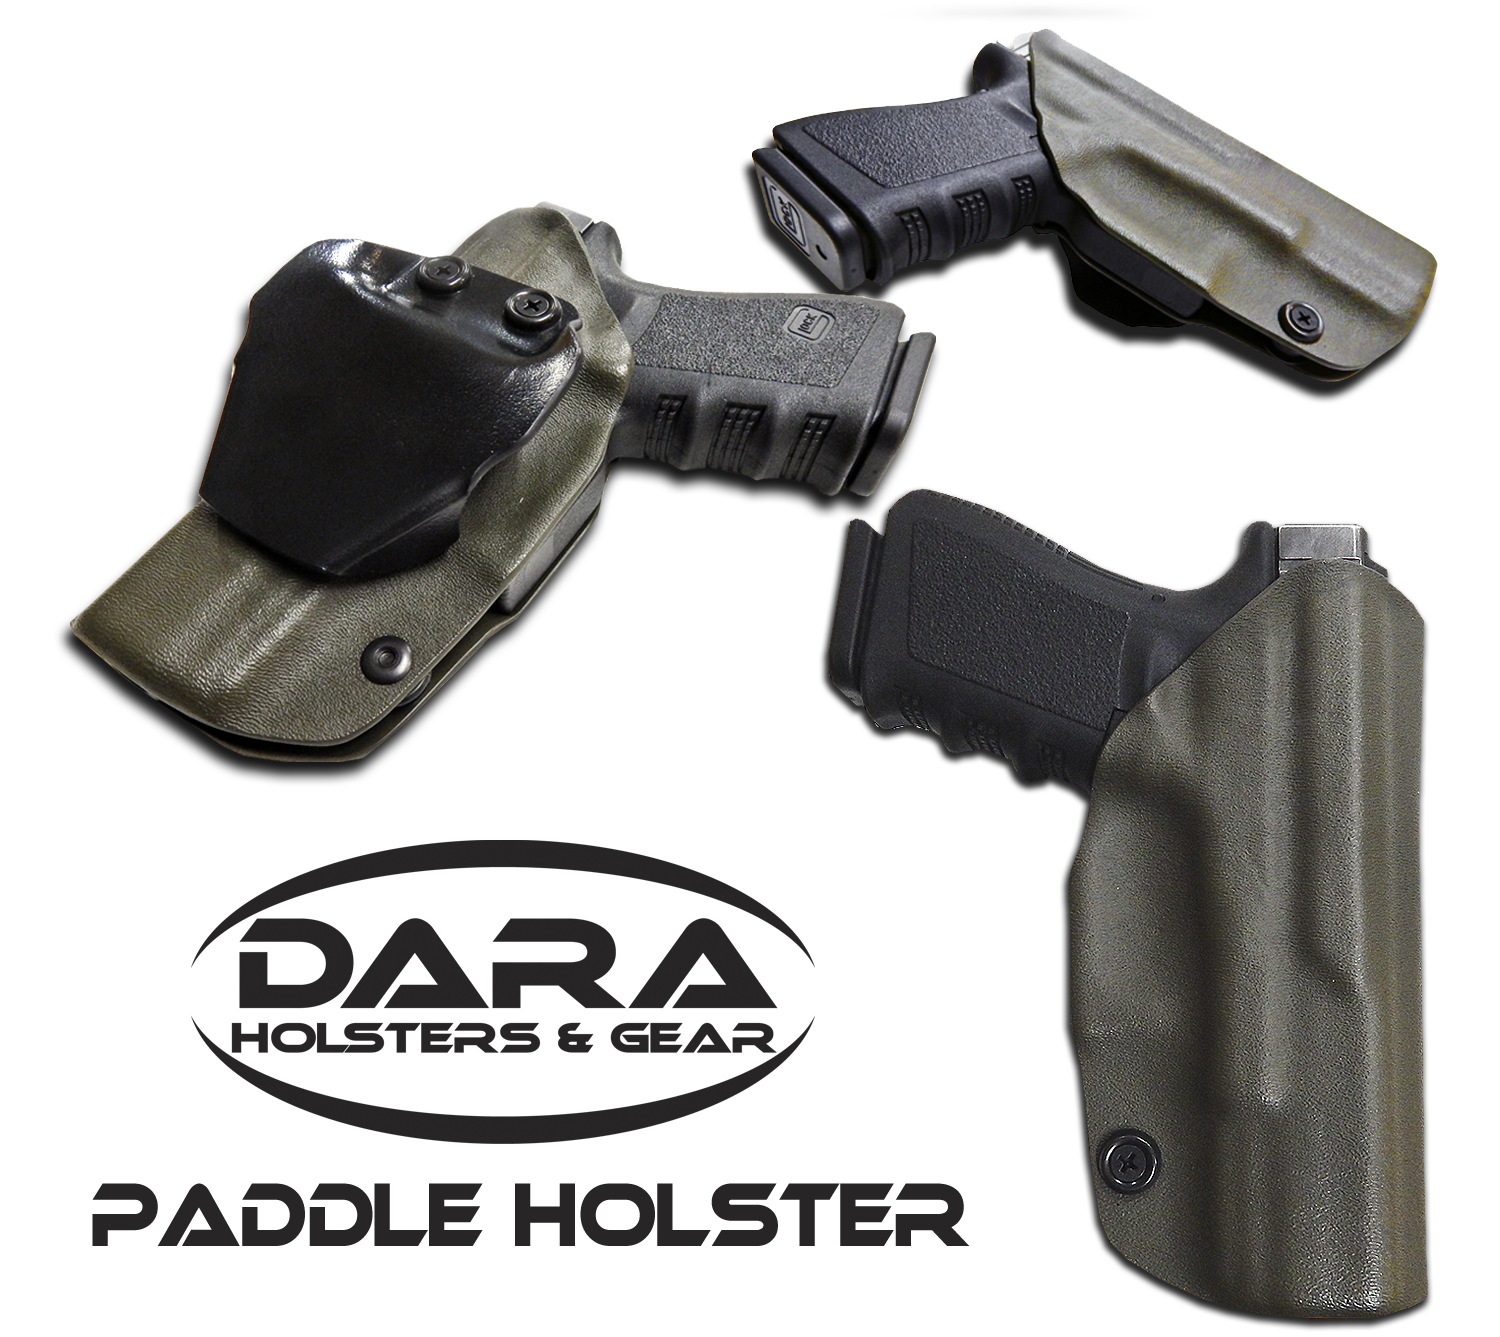 paddle-holster-od-green.png